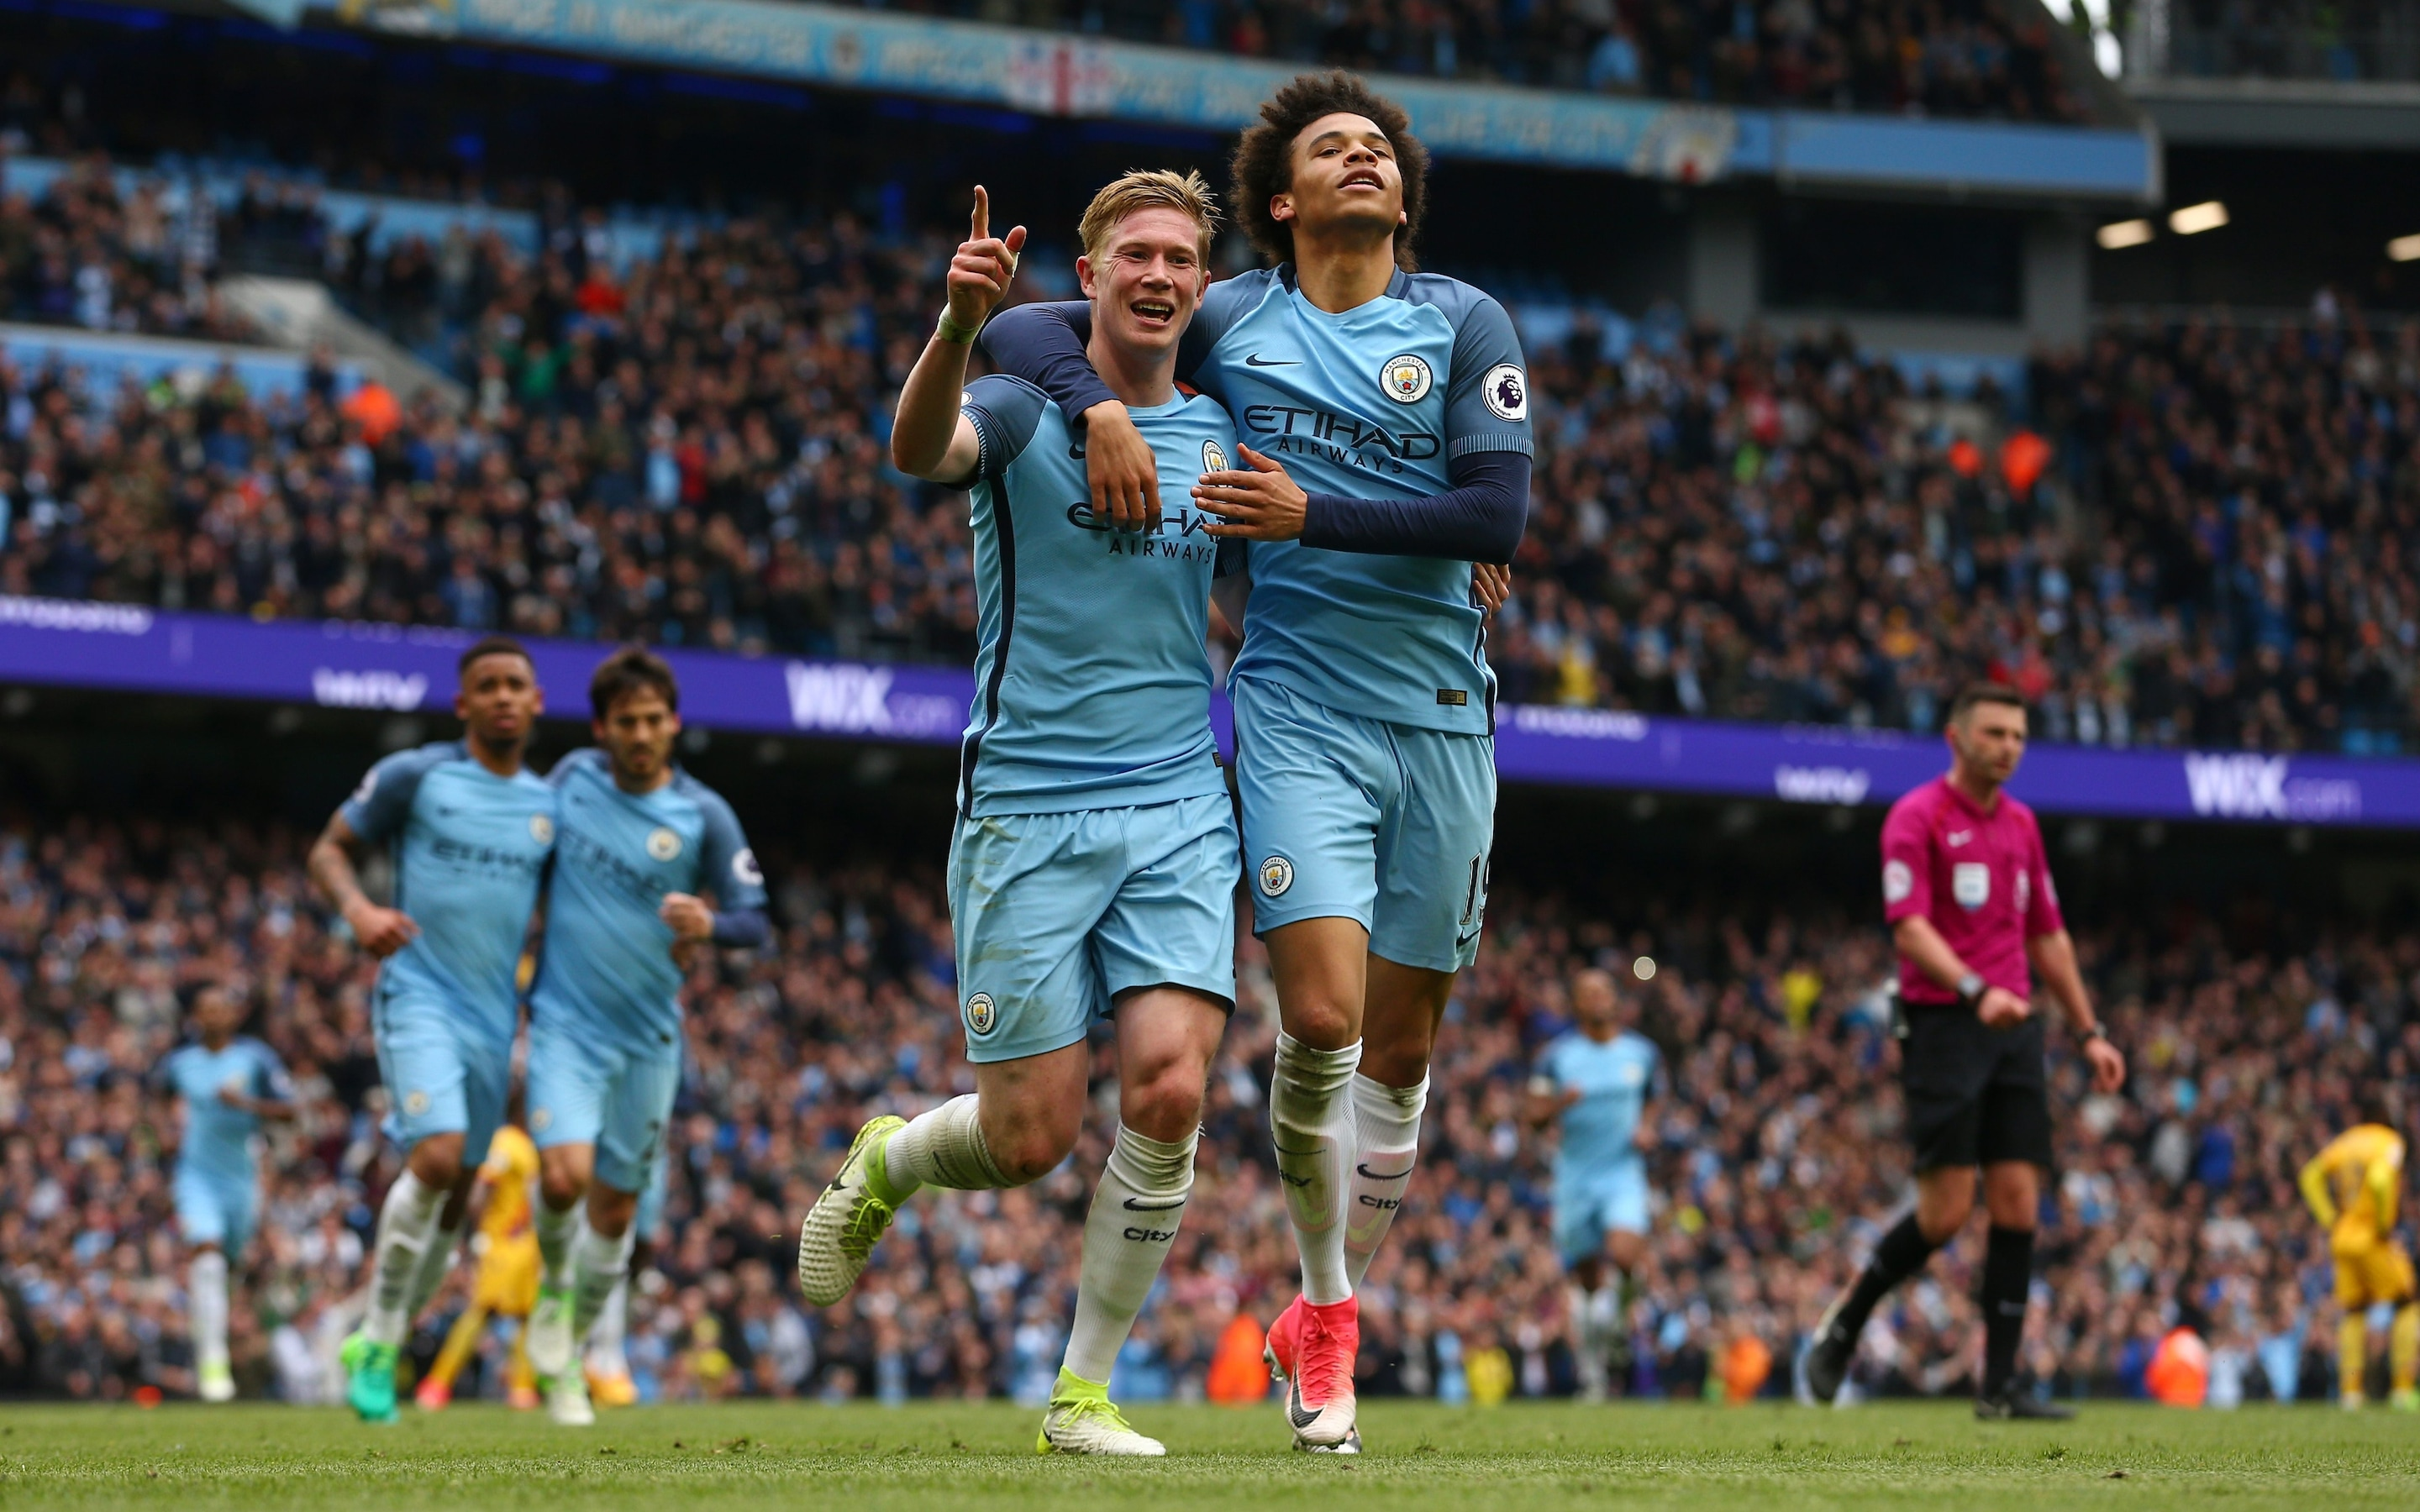 Manchester City 5 Crystal Palace 0 Everything Clicks For